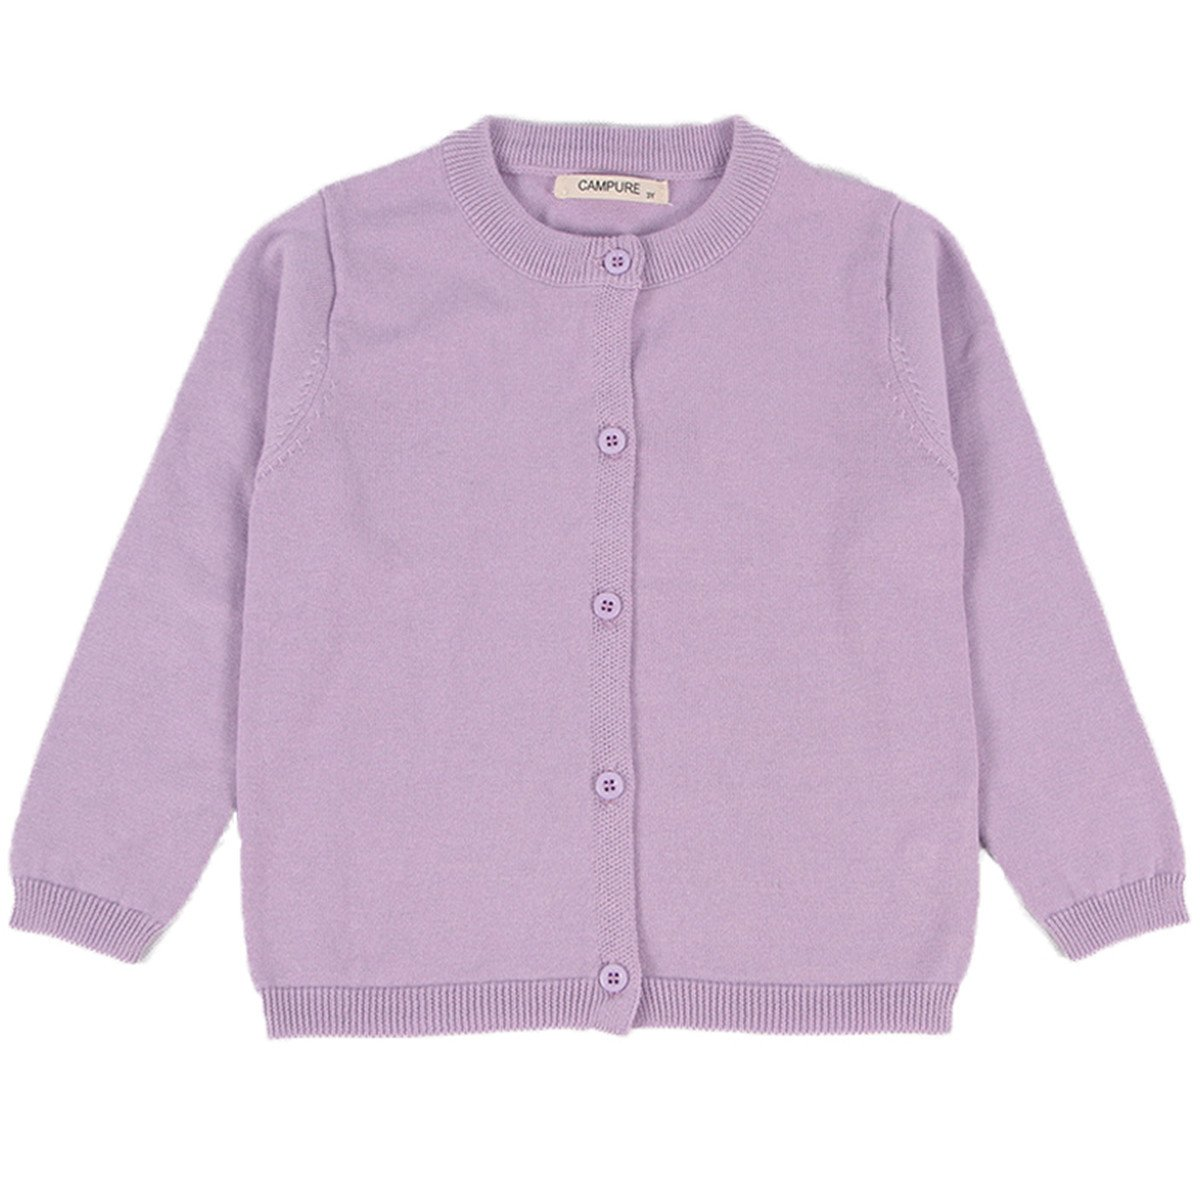 Little Girls Cute Crew Neck Button-down Solid Fine Knit Cardigan Sweaters 3-4 Years